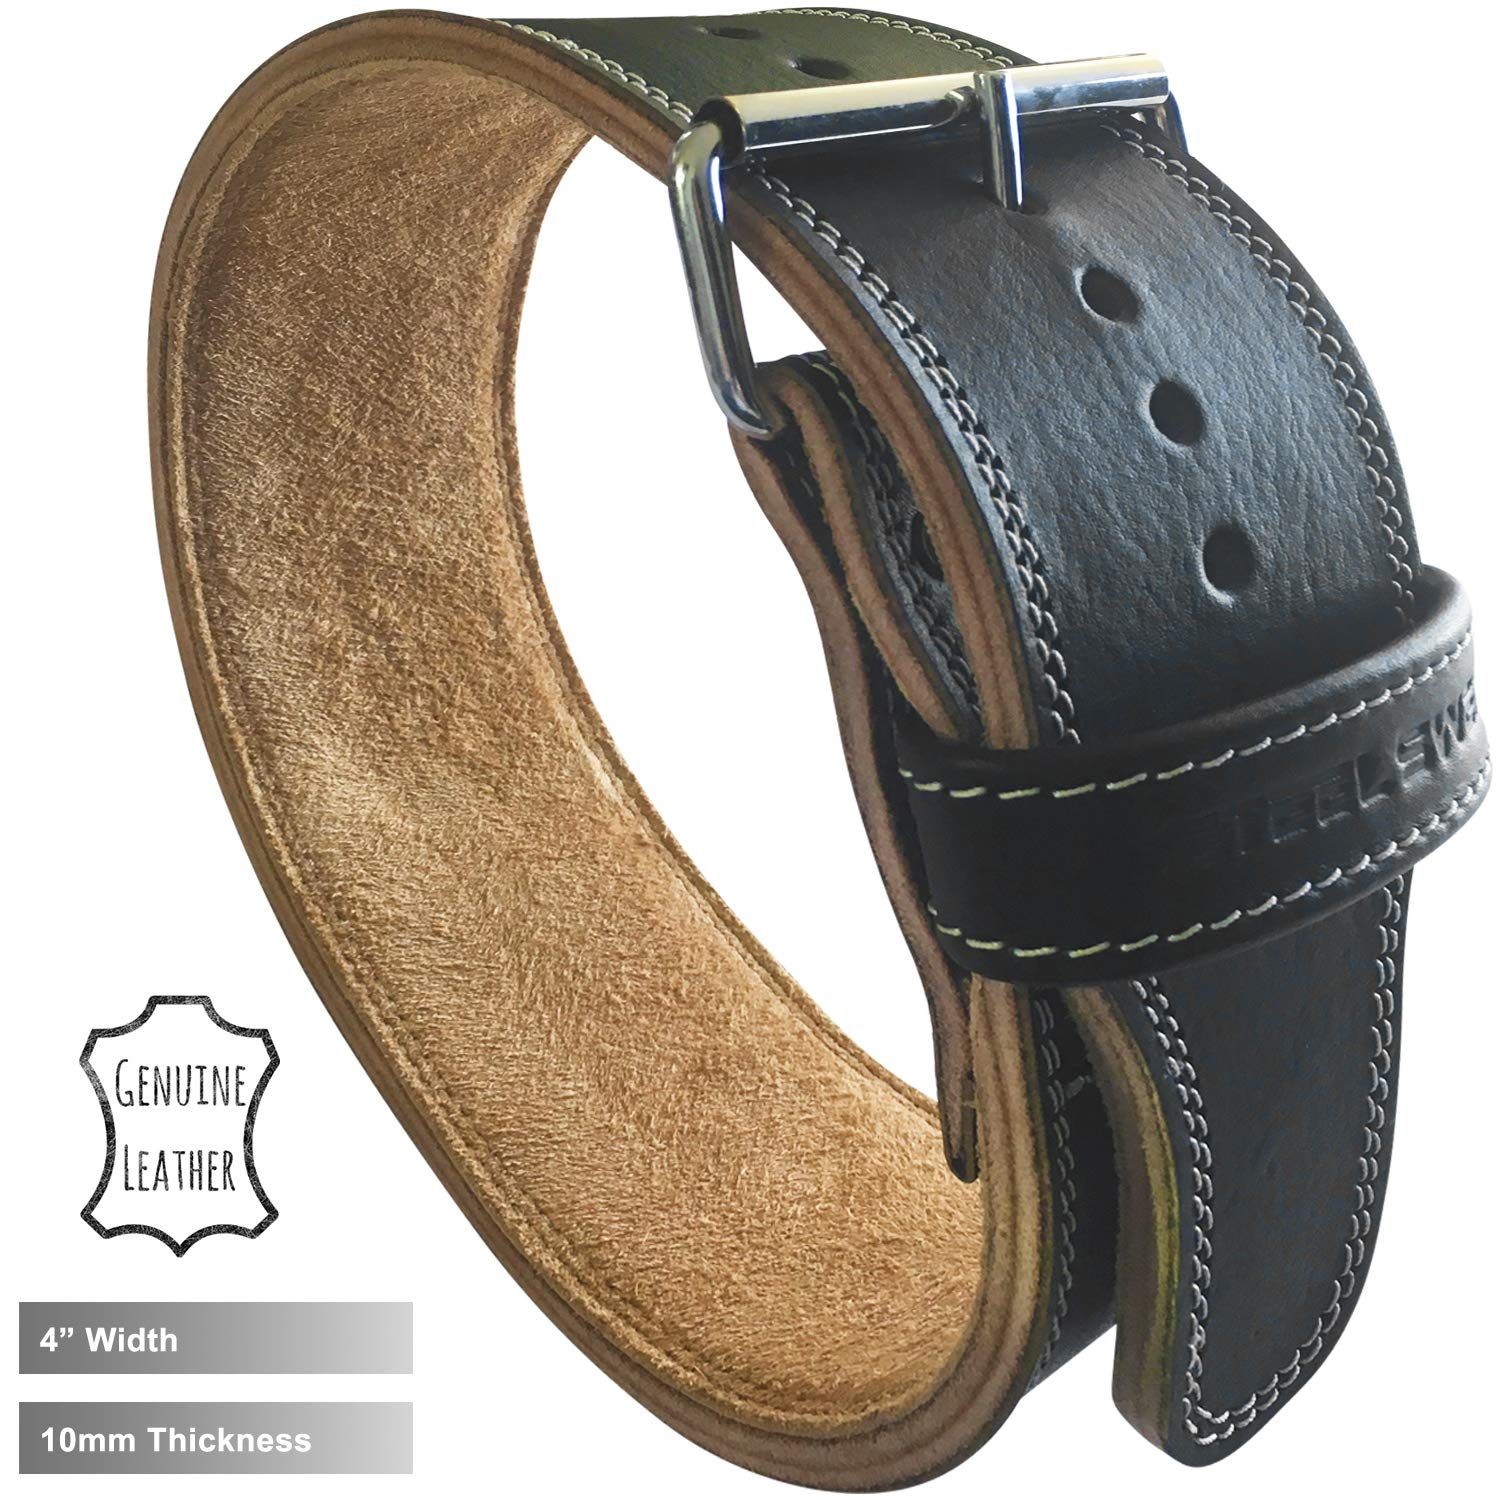 Steel Sweat Weight Lifting Belt - 4 Inches Wide by 10mm - Single Prong Powerlifting Belt That's Heavy Duty - Genuine Cowhide Leather - X-Large Texus by Steel Sweat (Image #4)